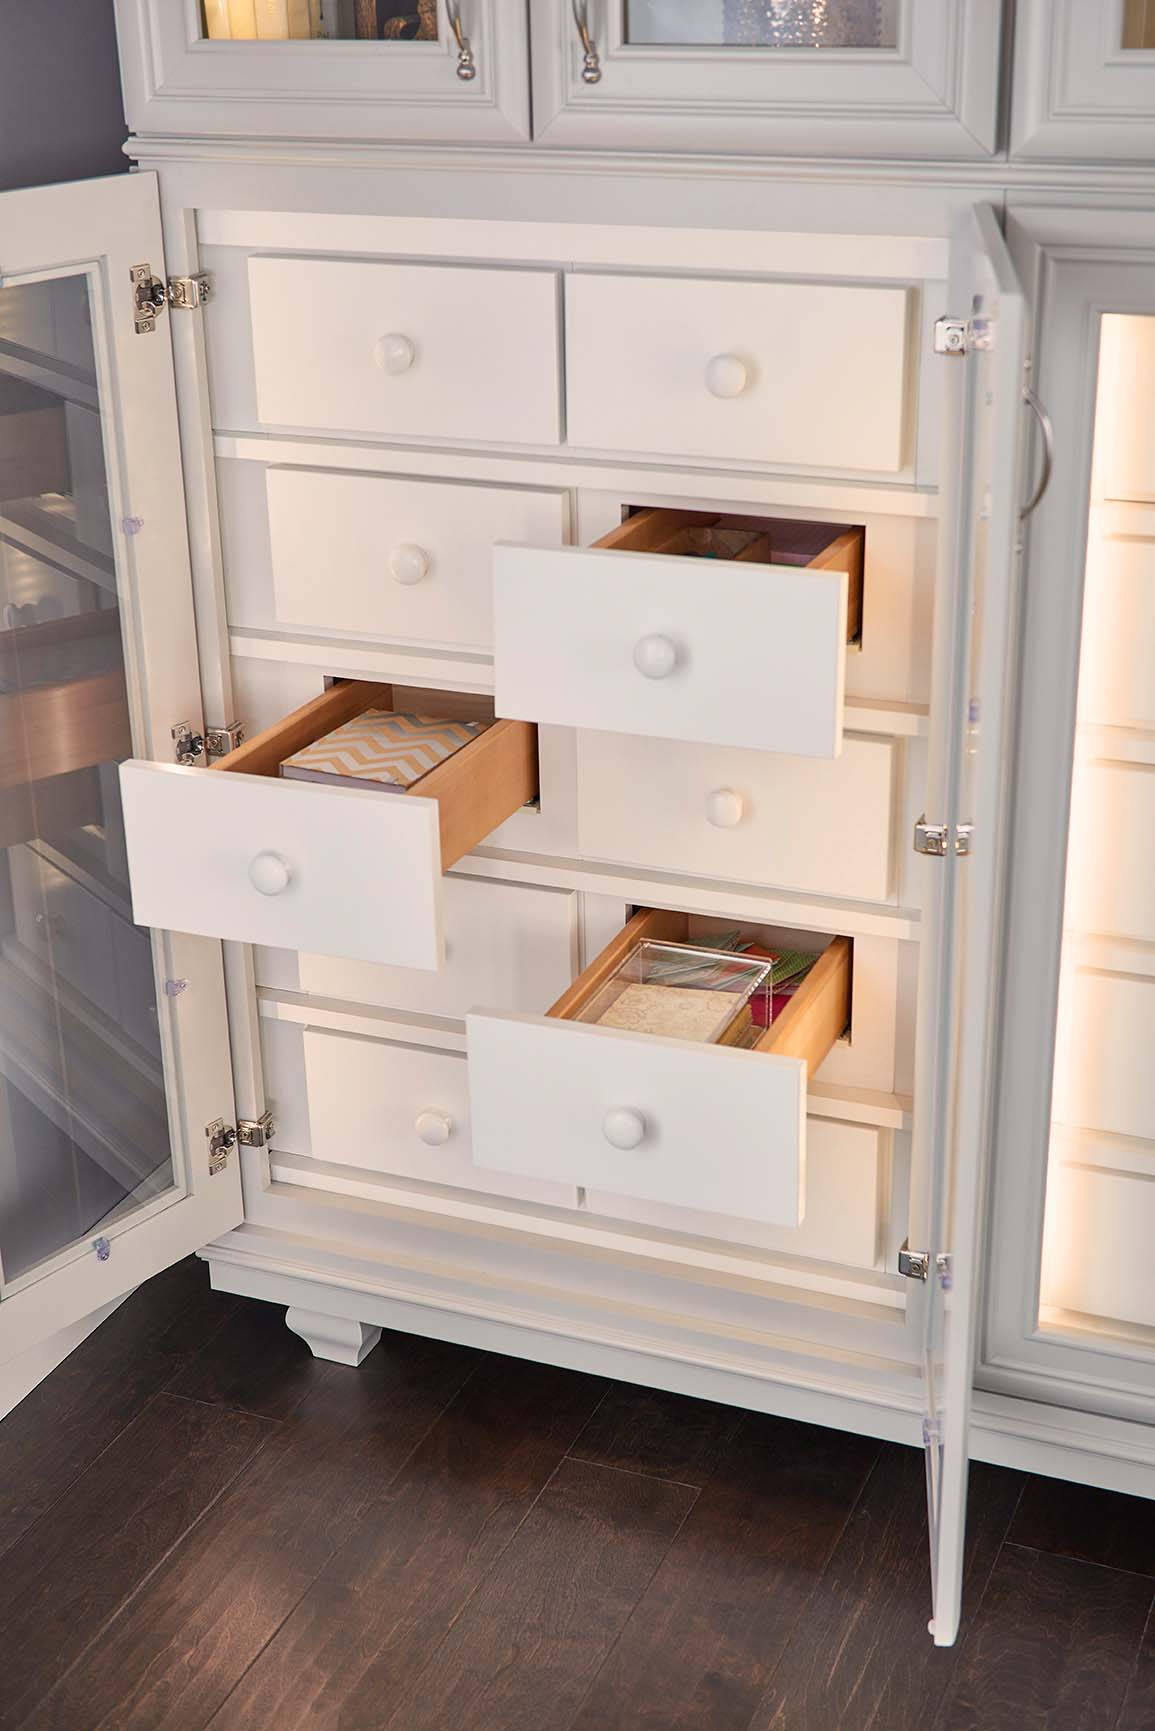 Adding Furniture Drawers adds interest as well storage to this design.